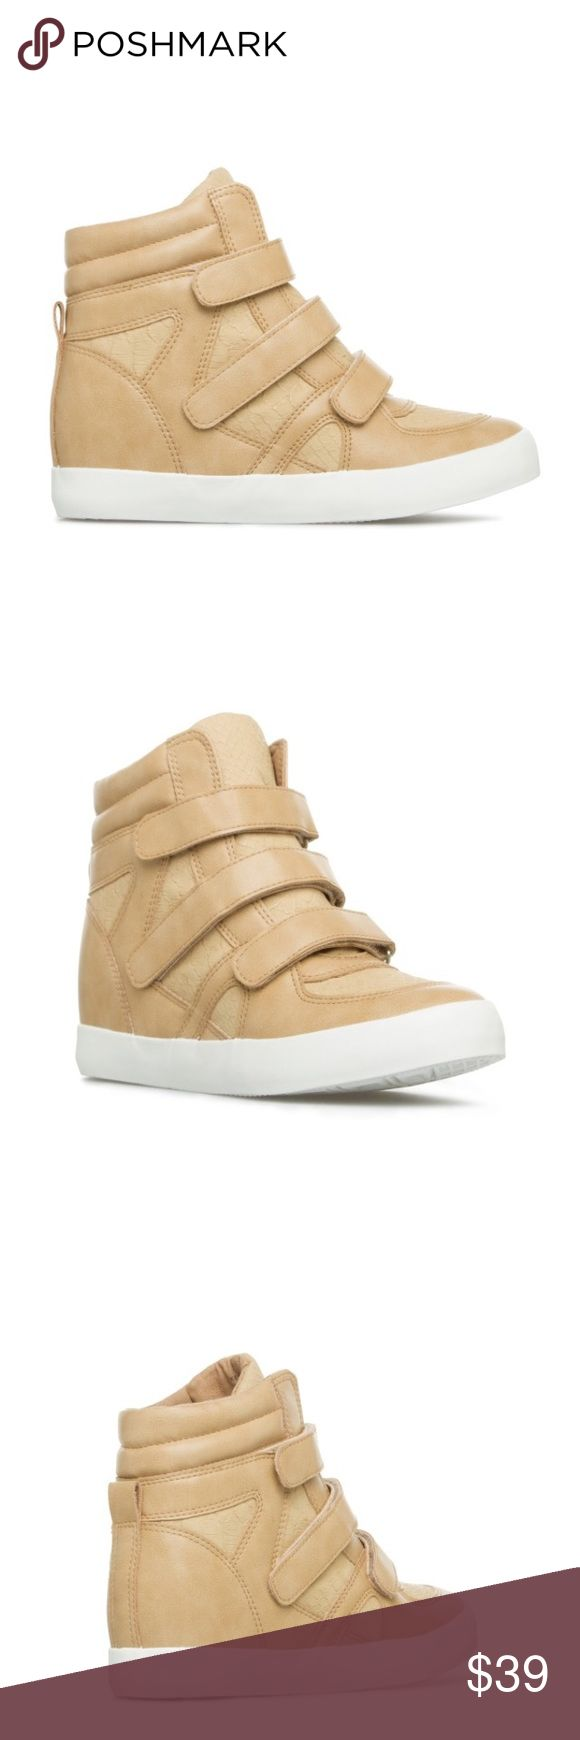 NWT Shoe Dazzle Tan Faux Leather Wedge Sneakers NWT Shoe Dazzle Tan Faux Leather Wedge Sneakers. Fit true to size. Currently available in sizes 6 and 8. Shoe Dazzle Shoes Sneakers